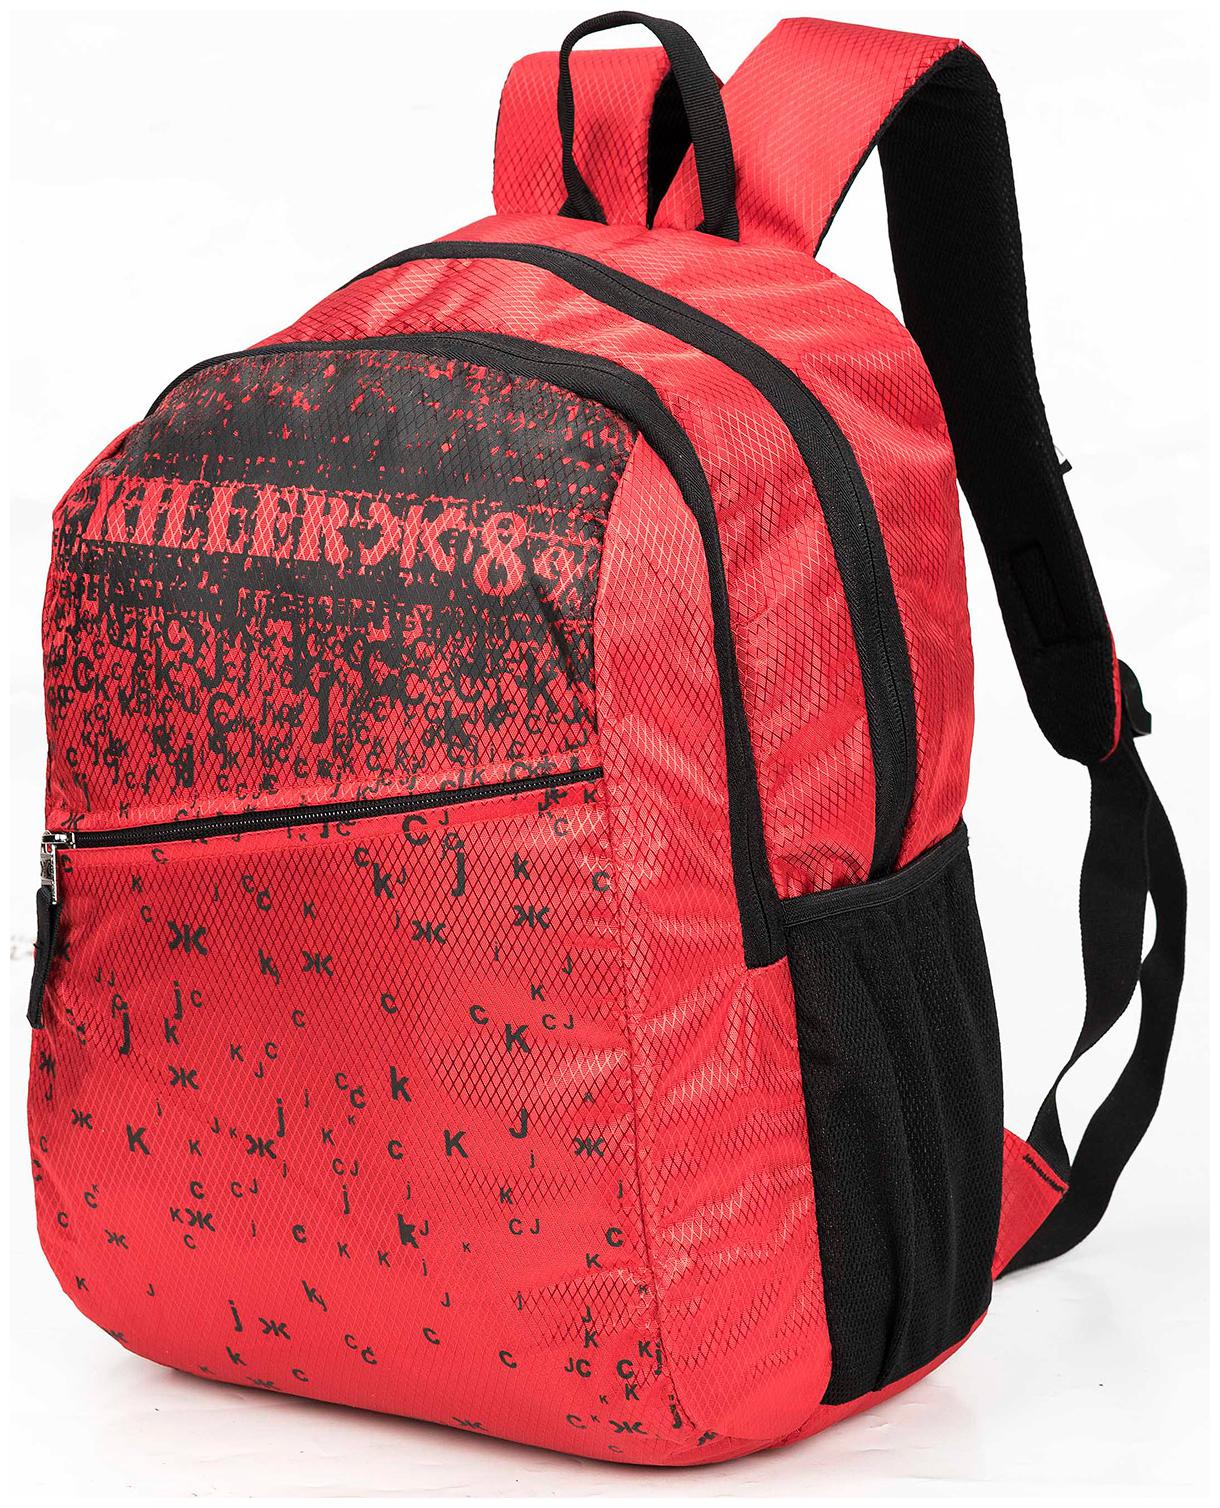 Killer Eco Red Polyester 25 Litre Small Kids School Bag by Cosmus Bags